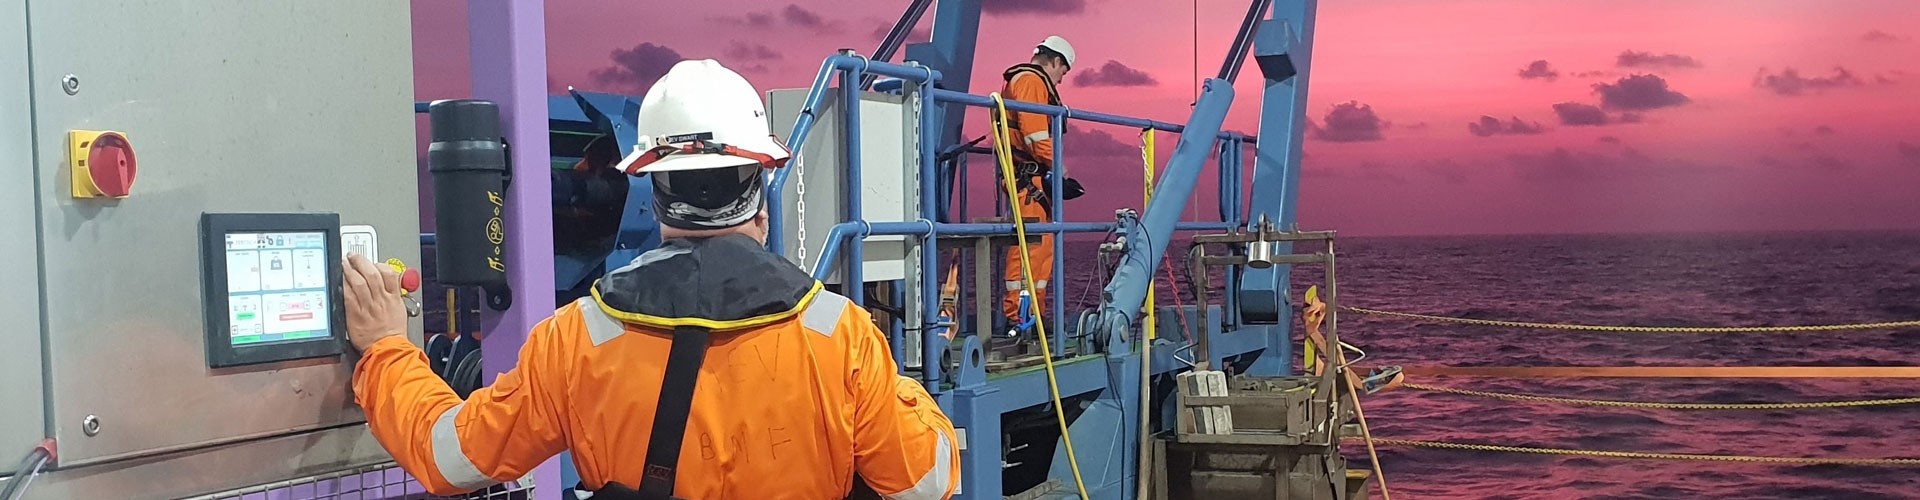 men working on a platform at sea with sunset in background